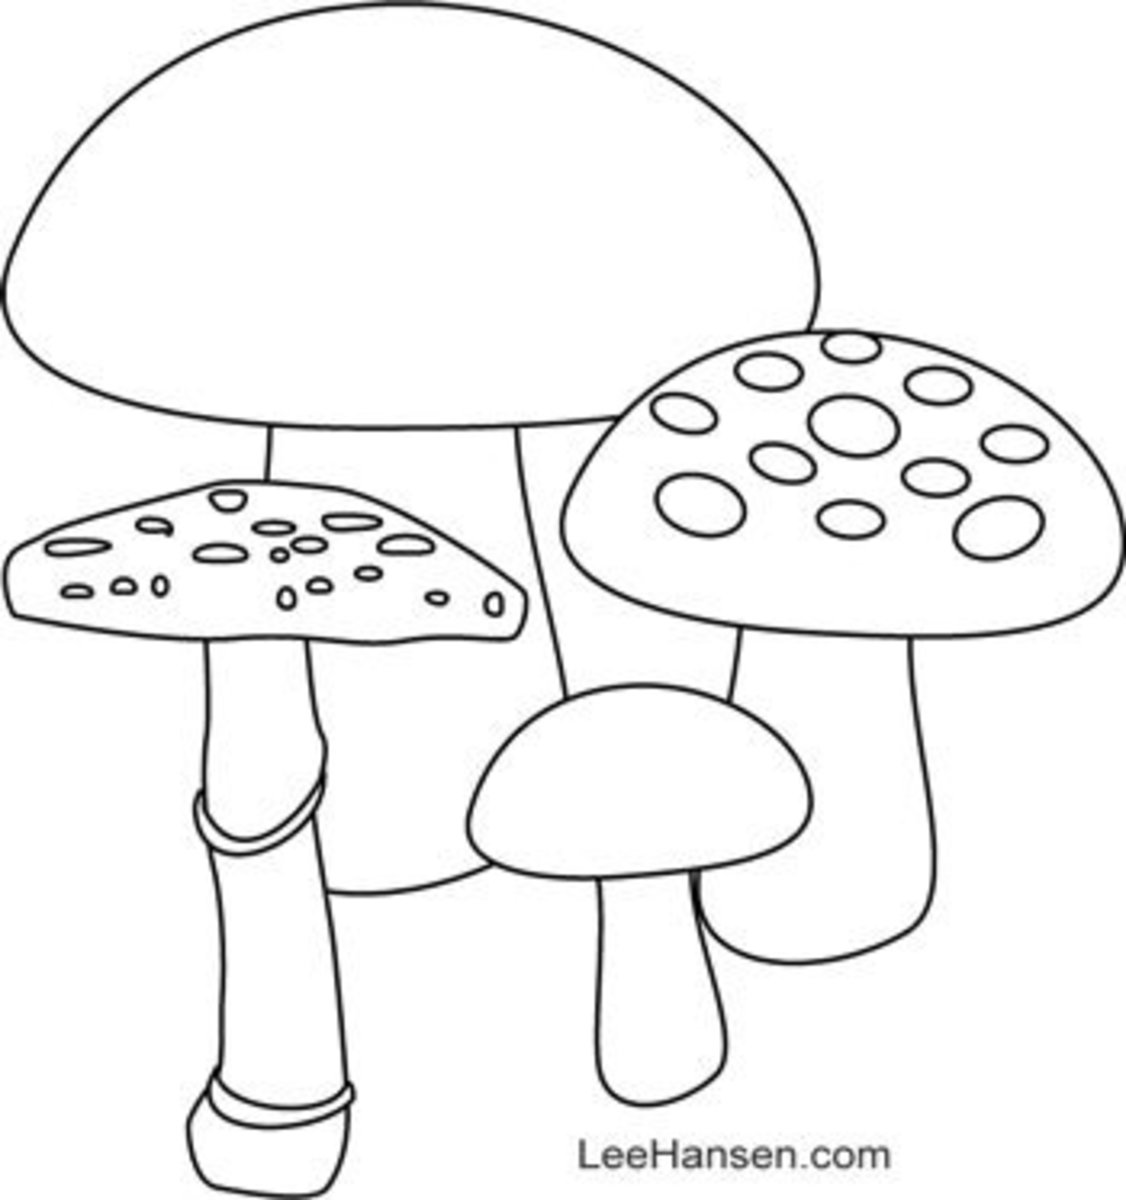 Mushrooms coloring page